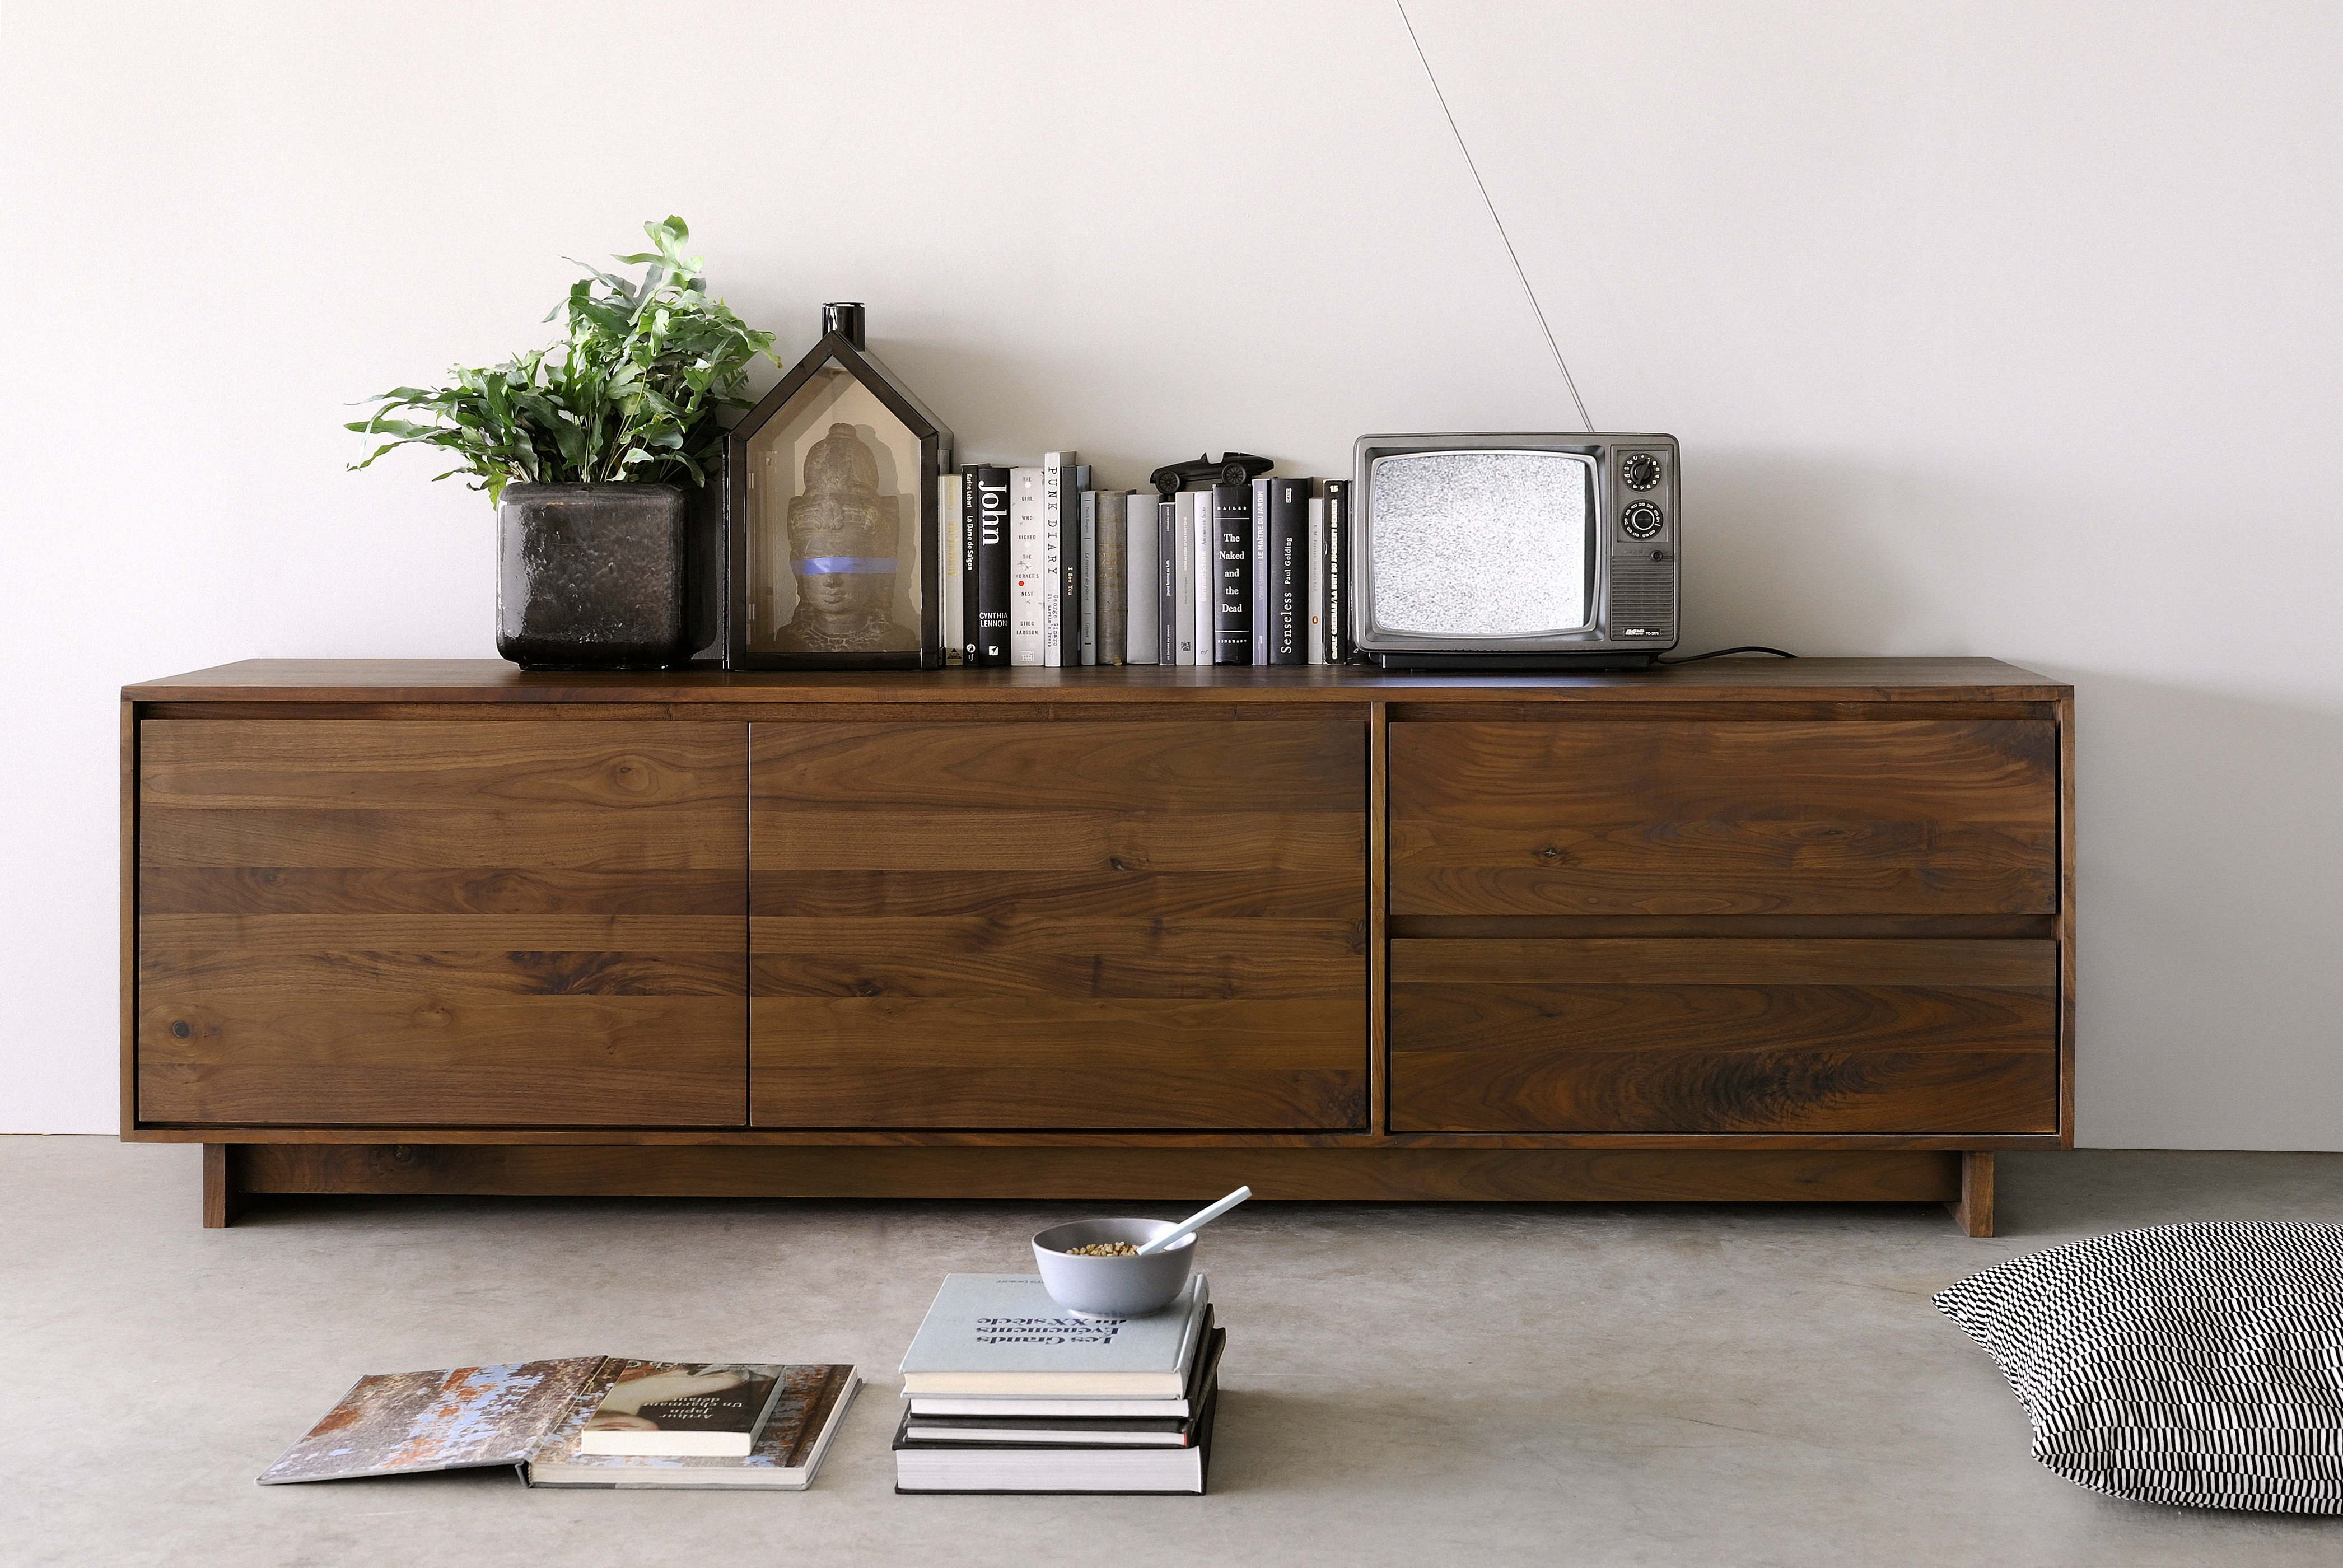 Design CmMilano Buffet Tv210 Wave Bas Store TFKcJ13l